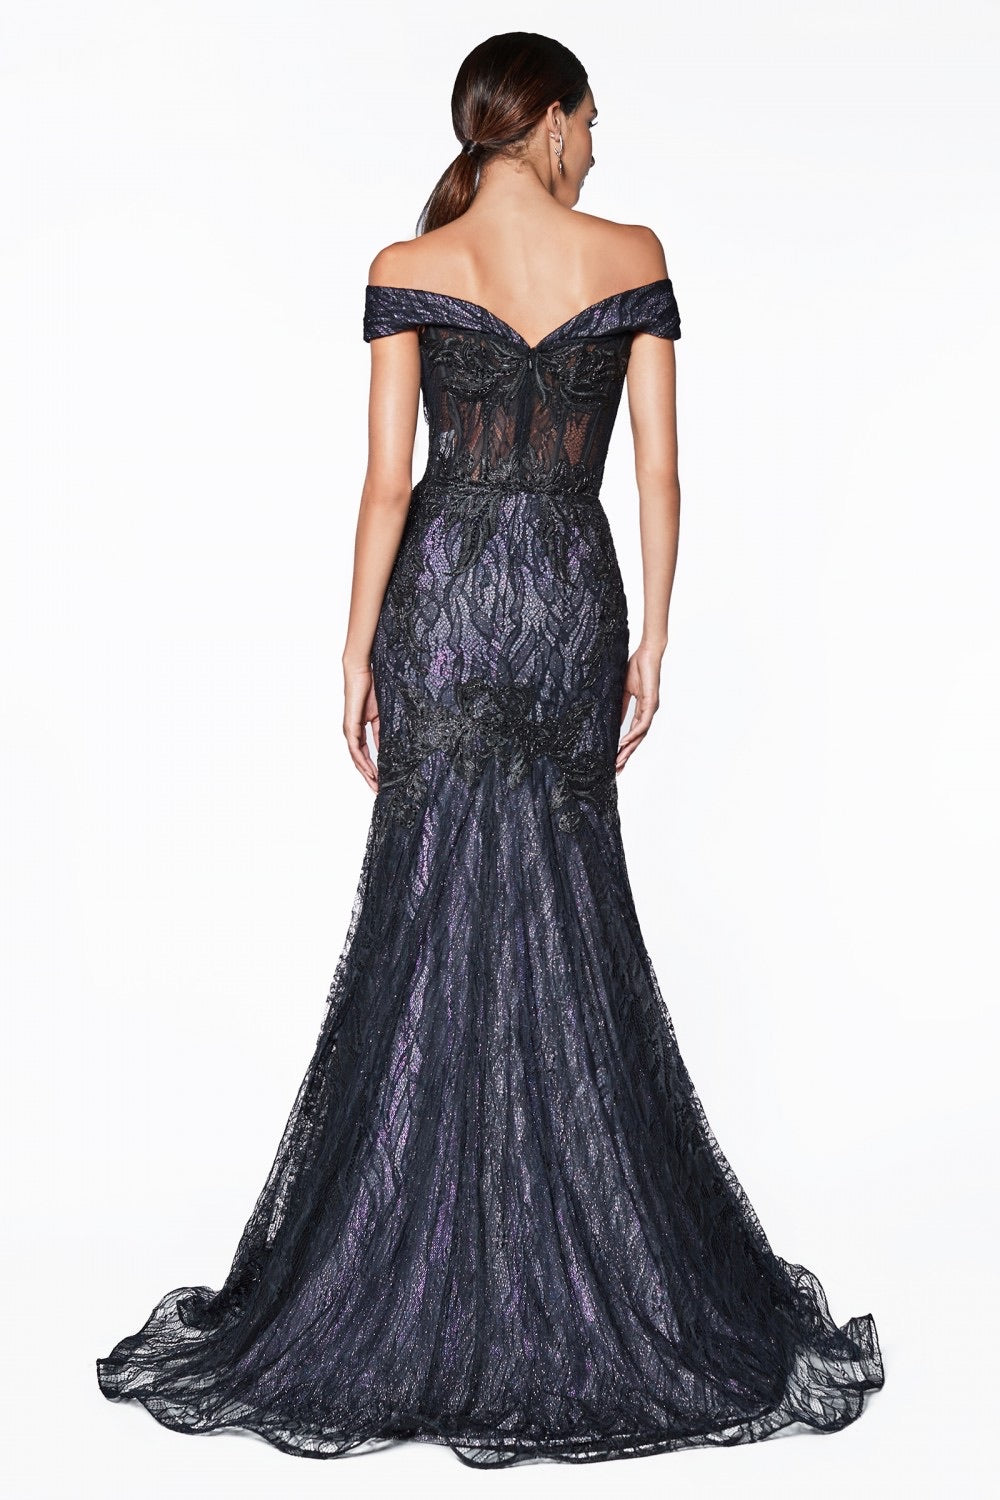 CD Rosie Dark Lace Corset Gown